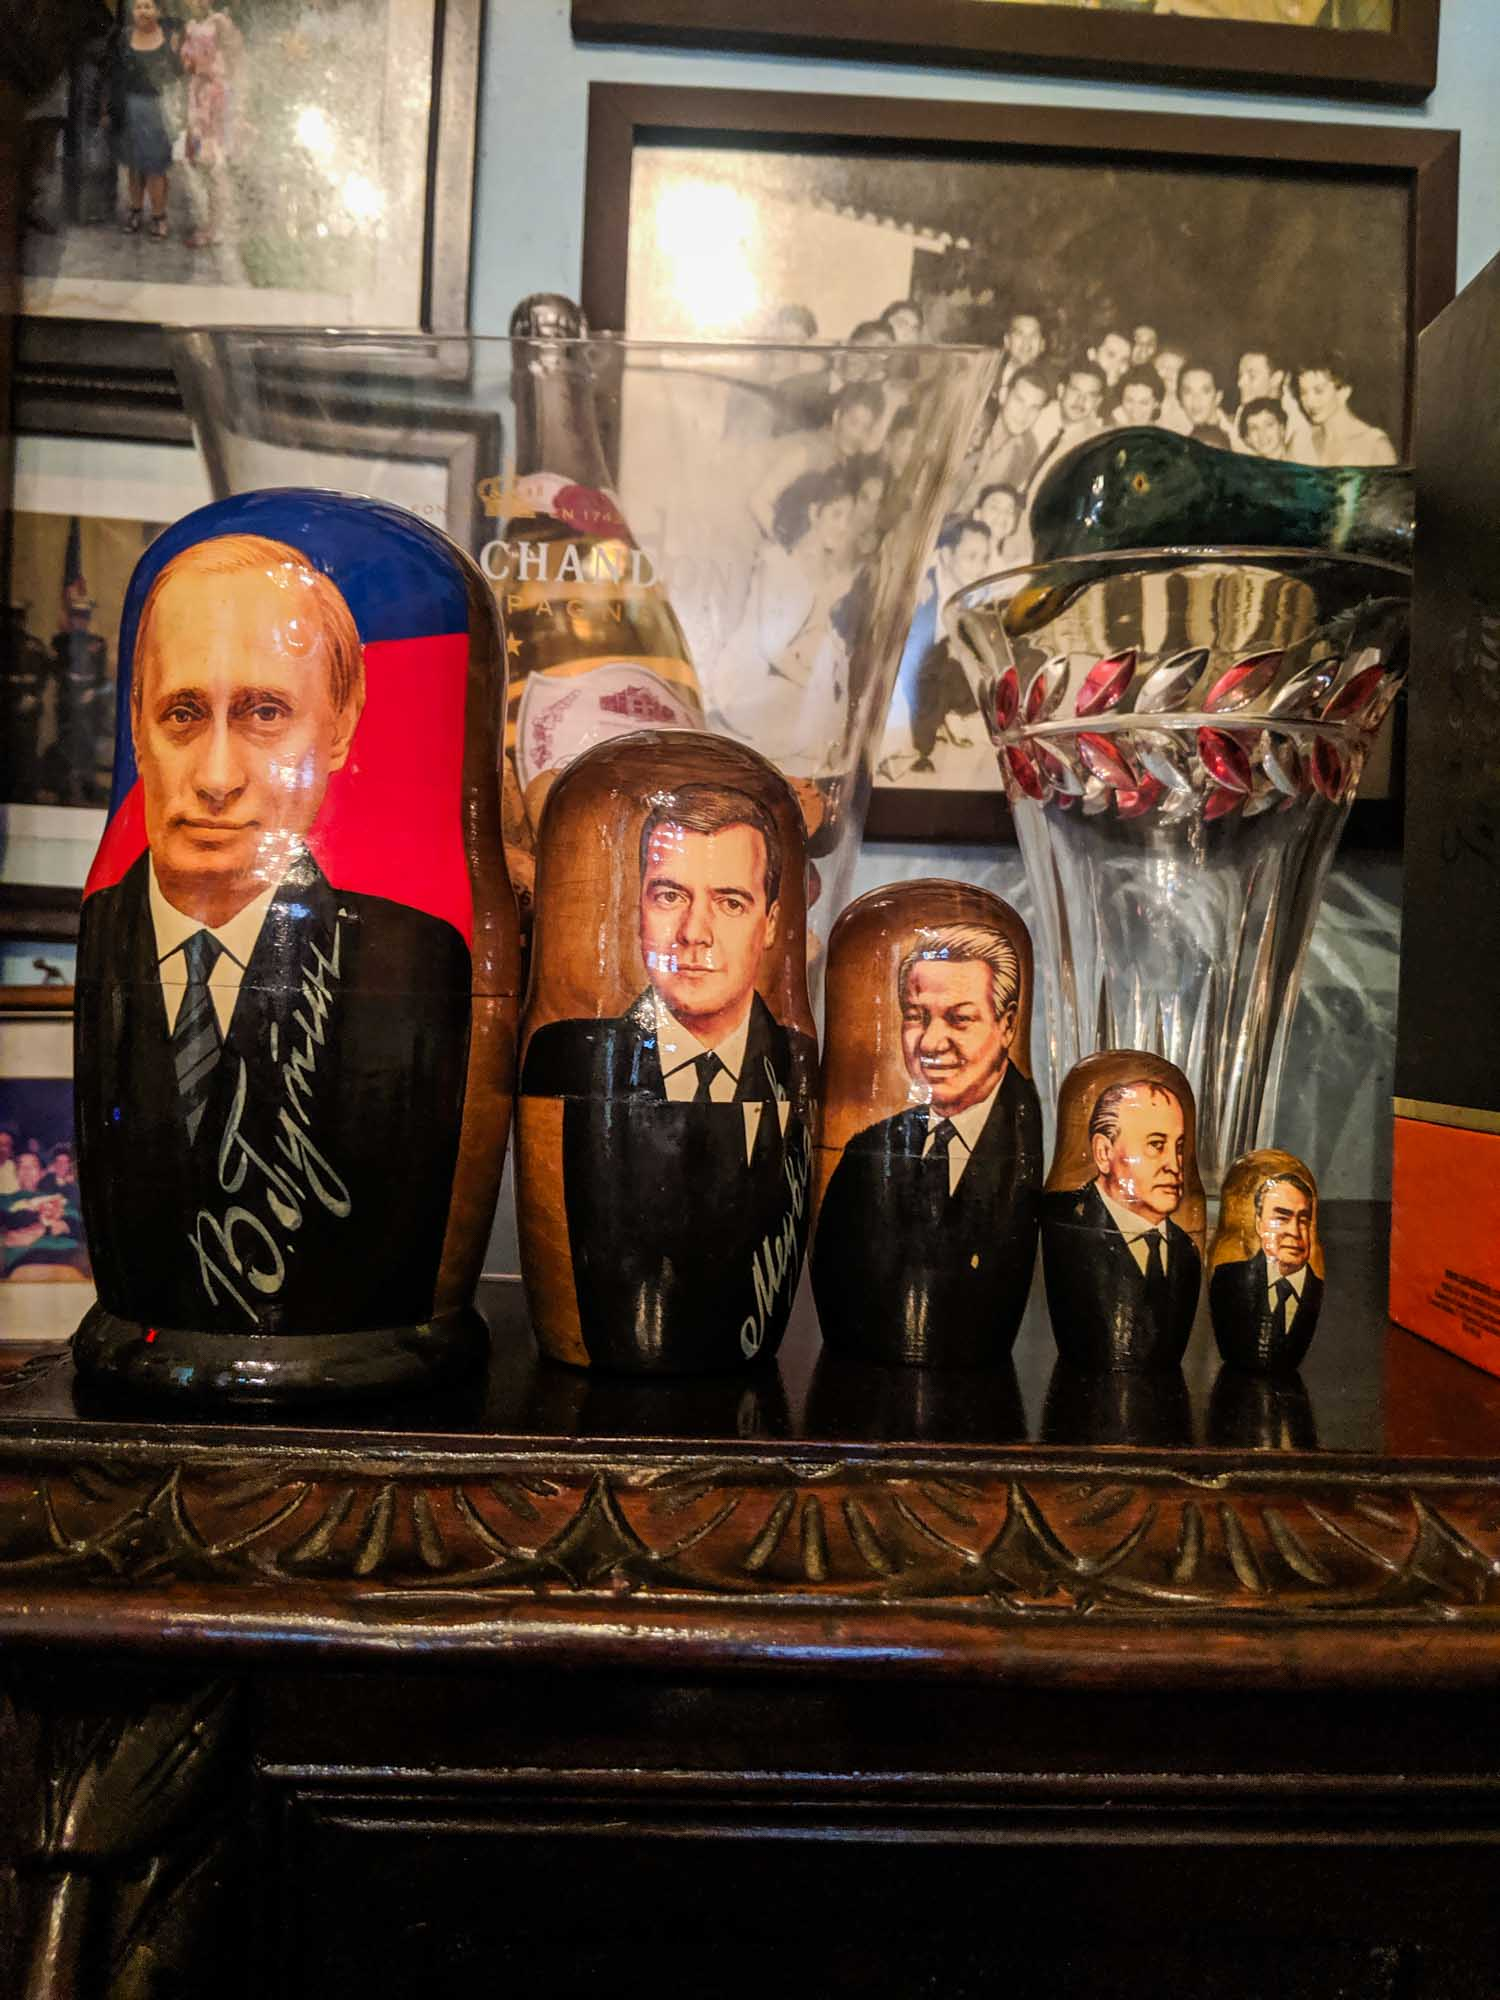 Russian dolls featuring Russian president Putin at restaurant in Havana Paladar San Cristobal